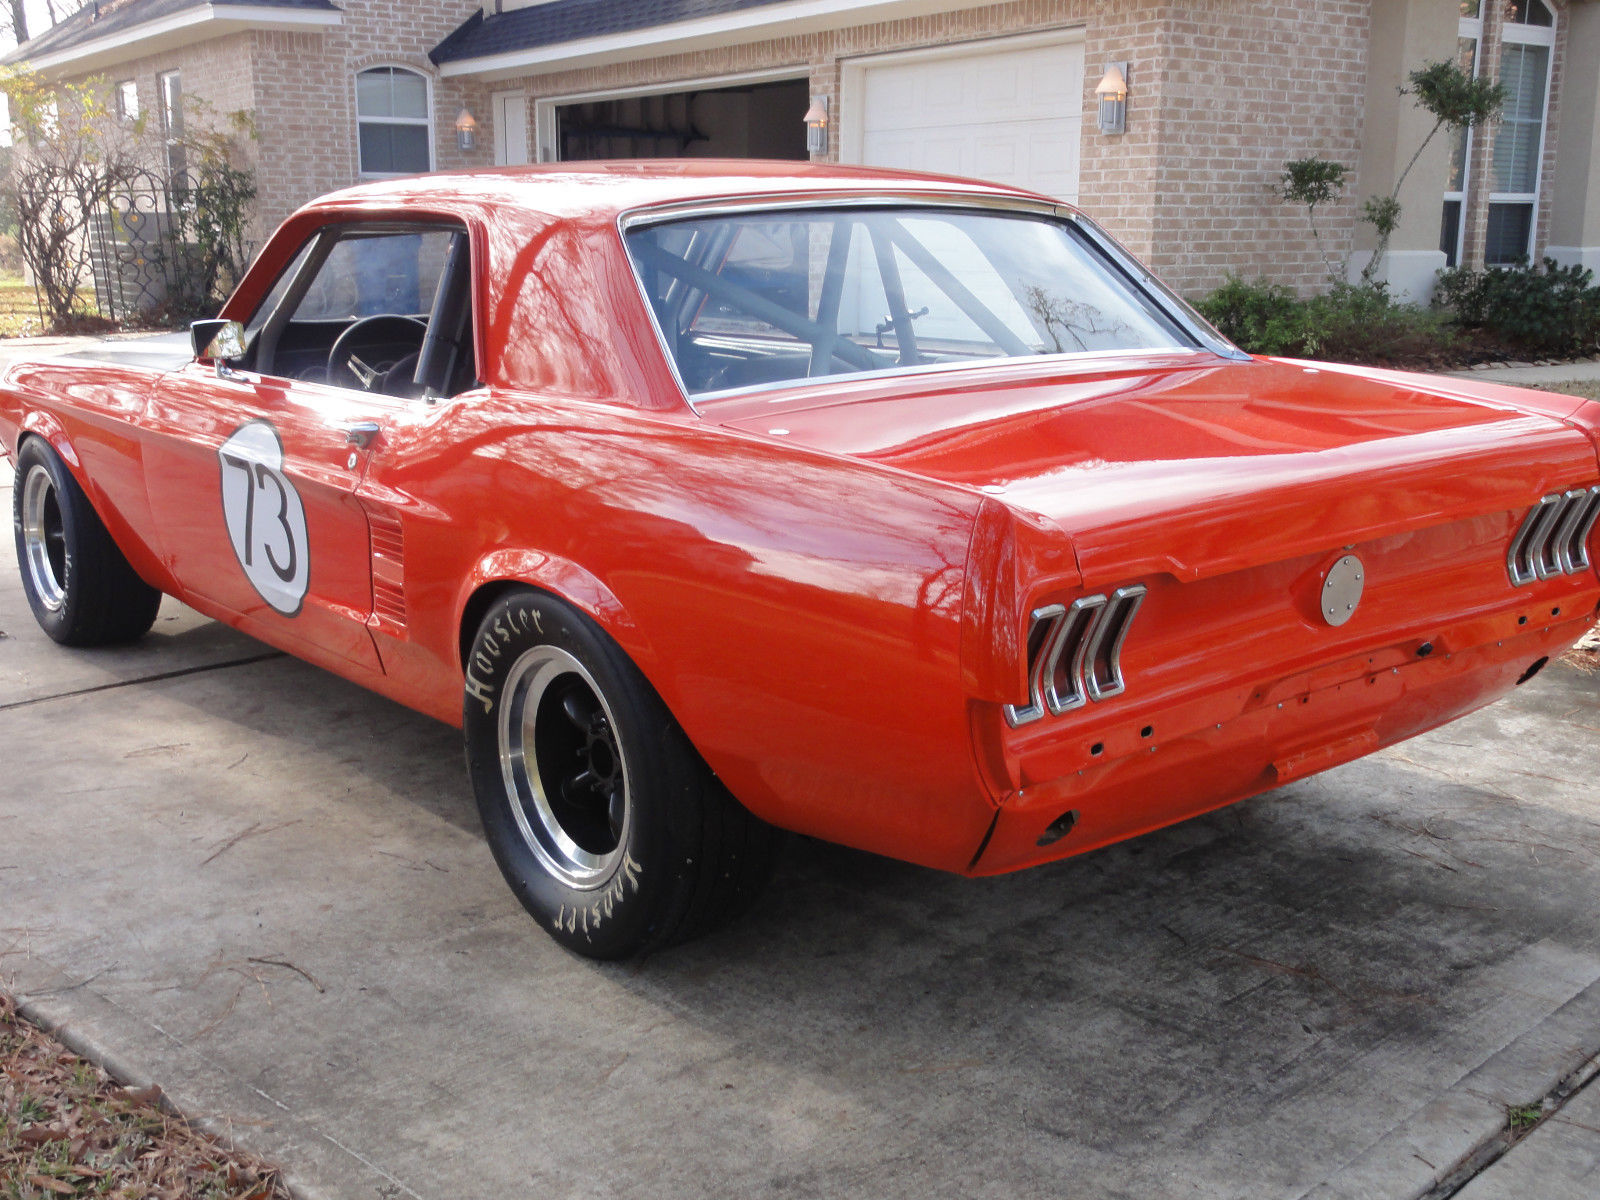 1967 ford mustang vintage race car  svra cvar  rmvr road